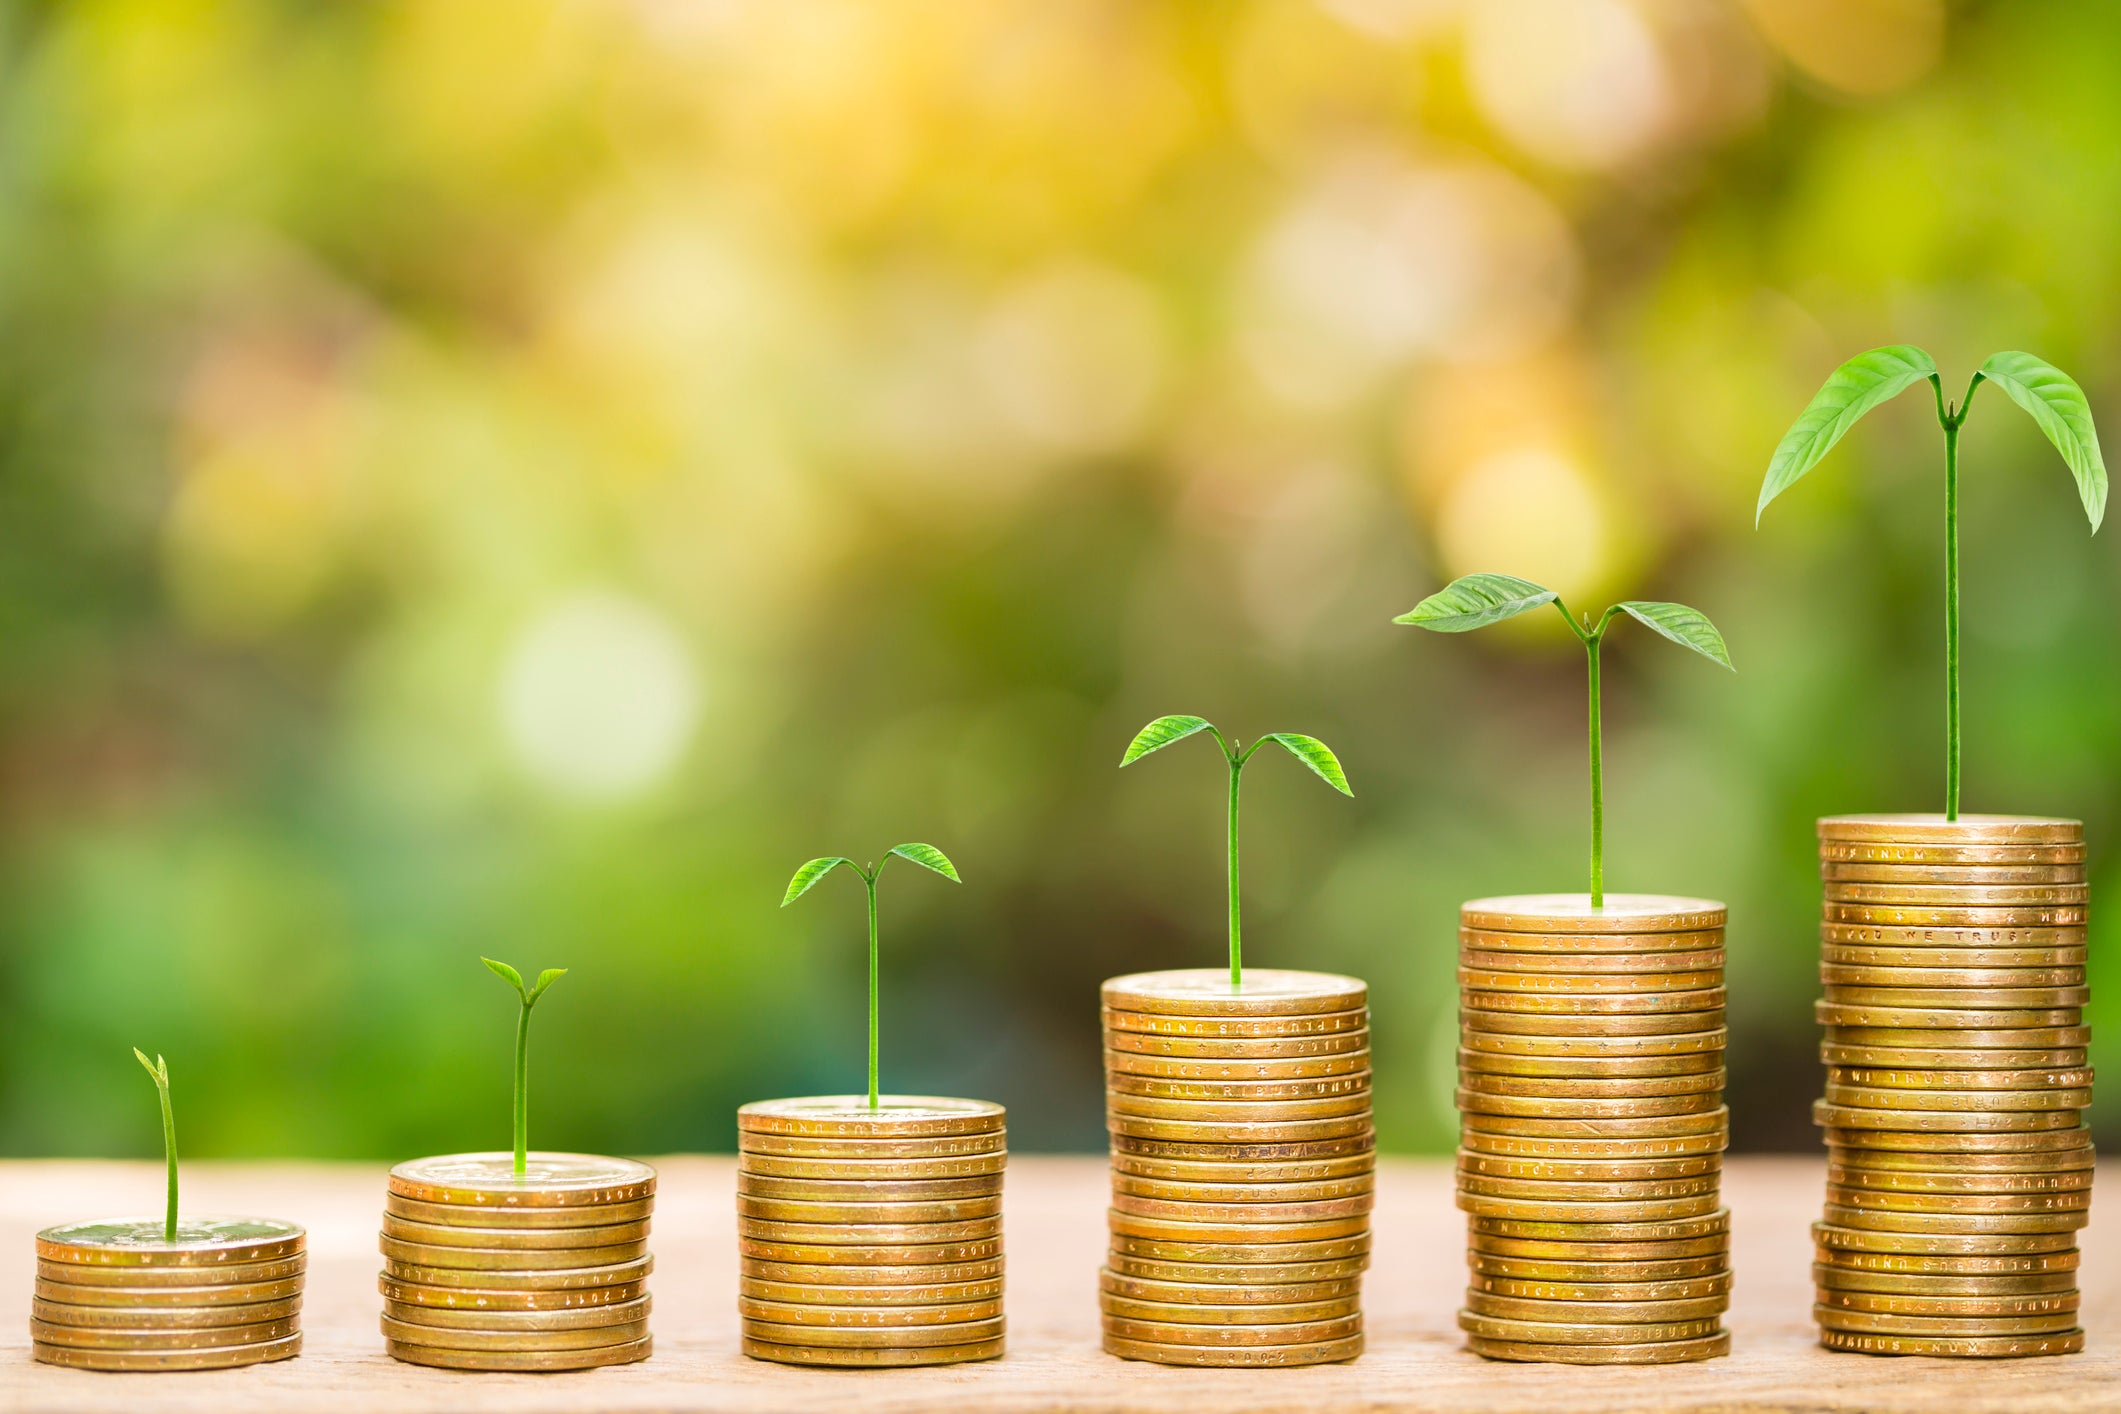 3 High-Yield Dividend Stocks to Buy Now